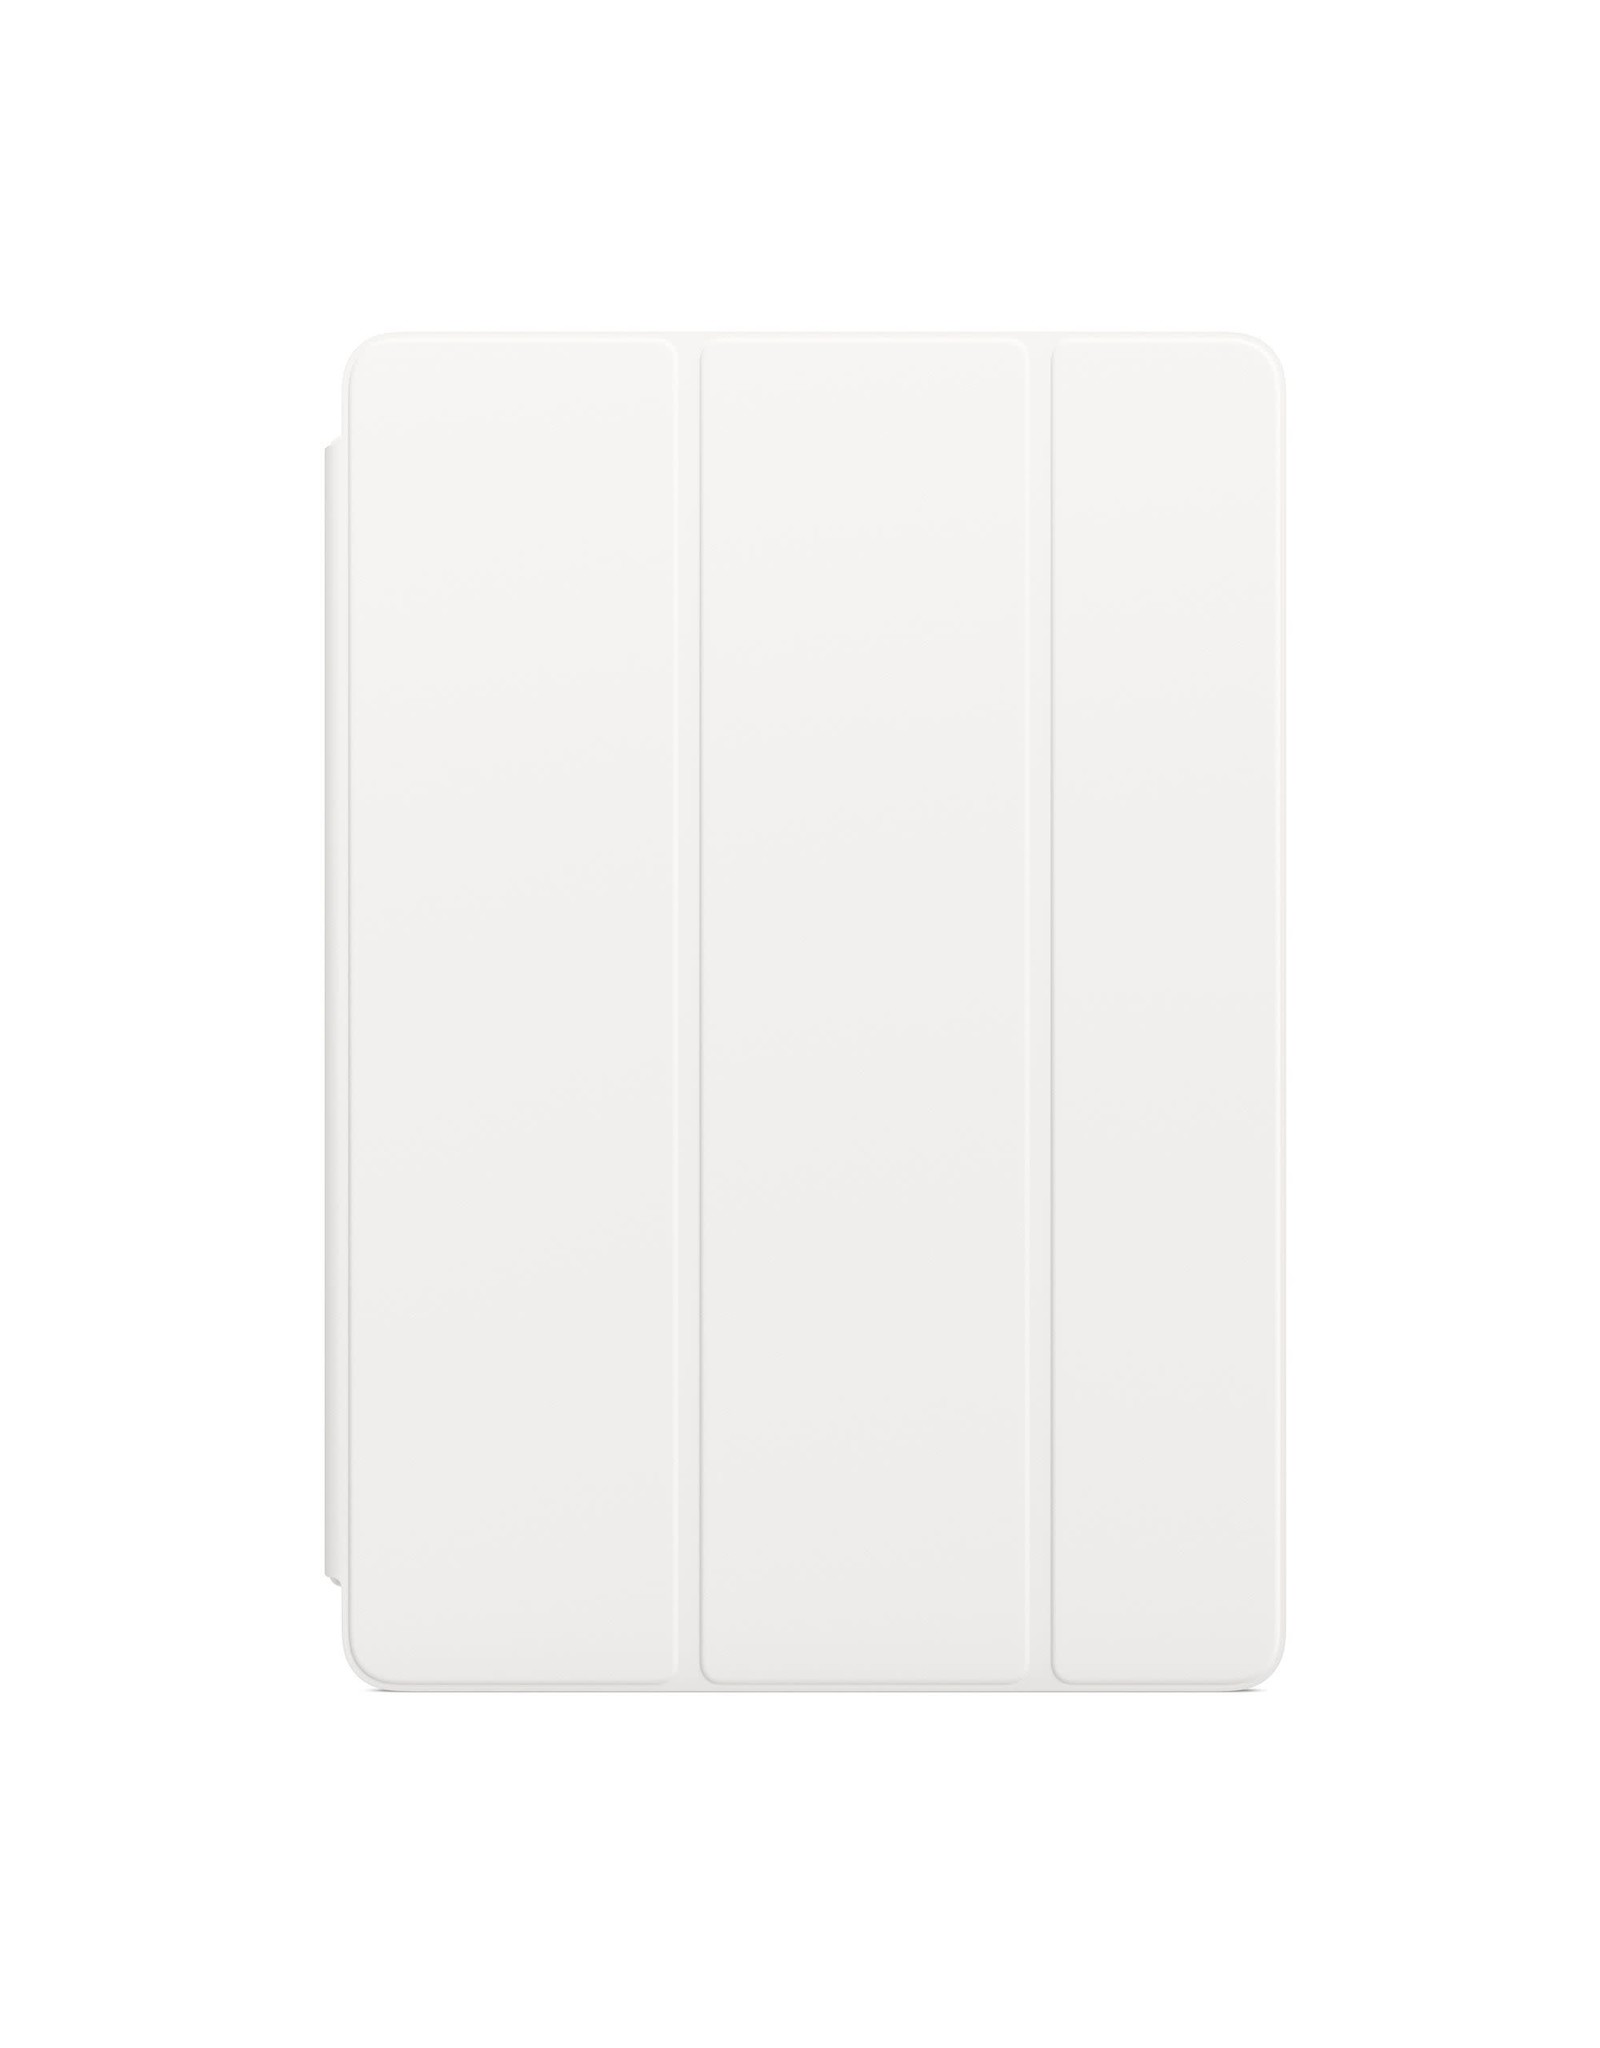 Apple Apple Smart Cover for iPad - White - (7th/8th/9th Gen), iPad Air (3rd generation) & iPad Pro 10.5-inch